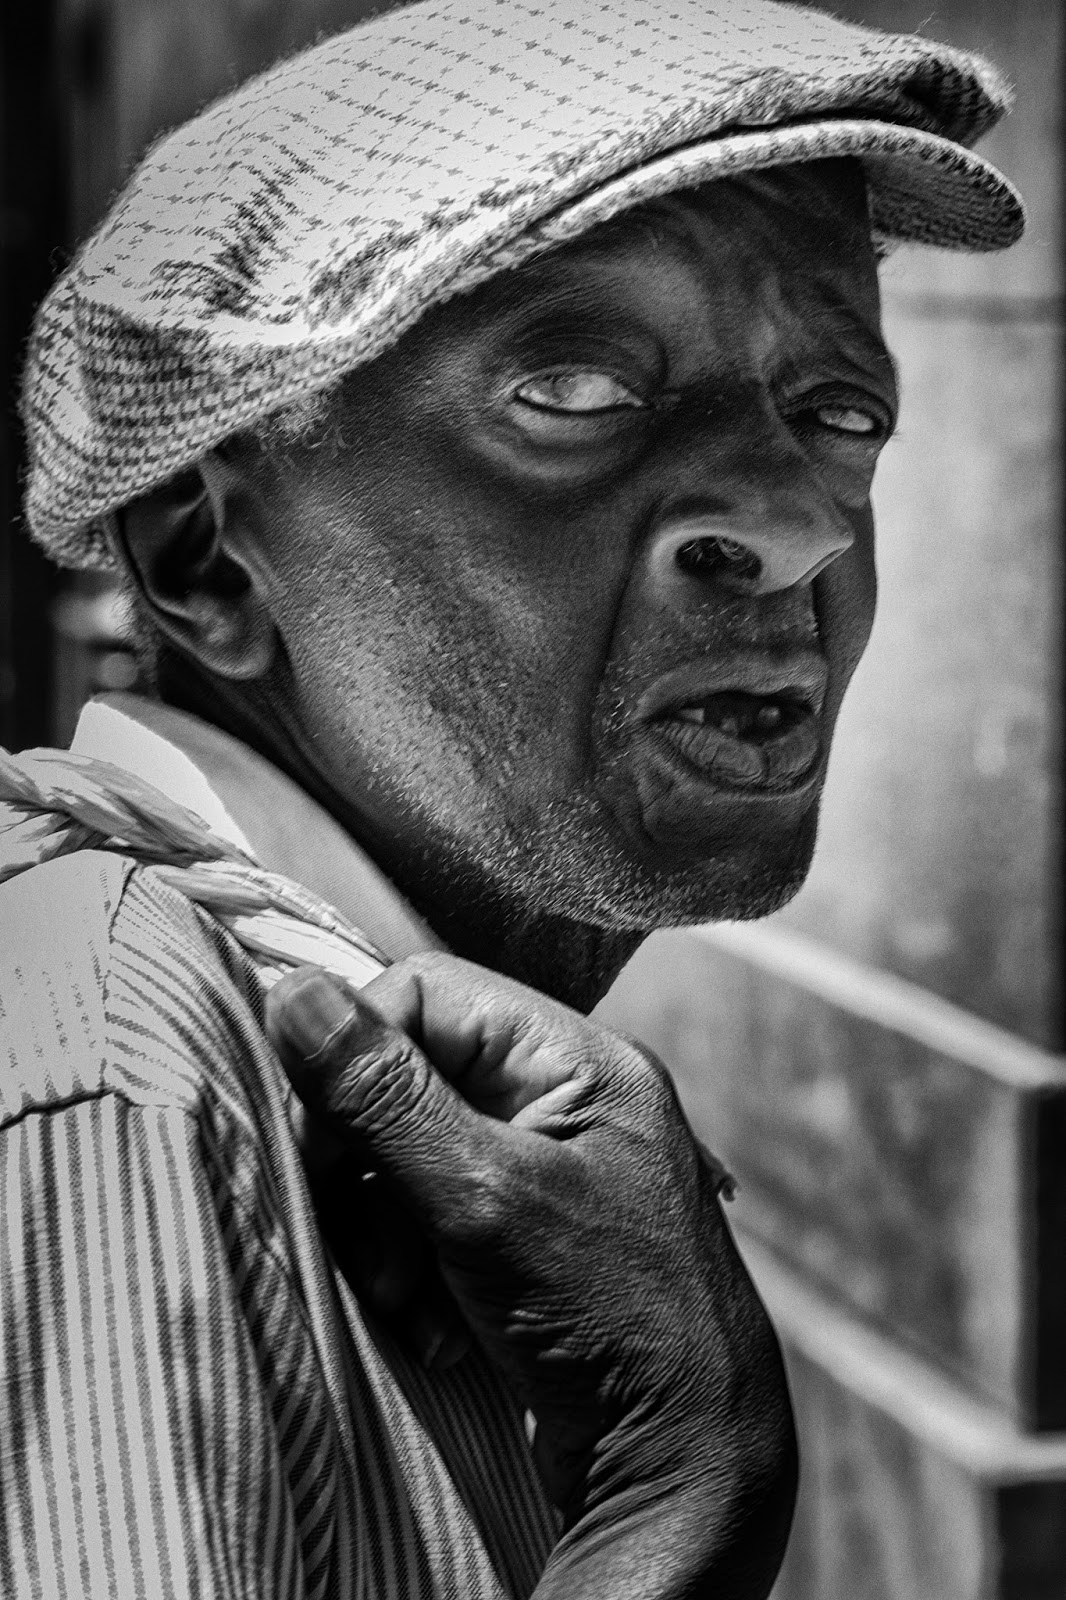 A candid portrait shot in Cape Town South Africa